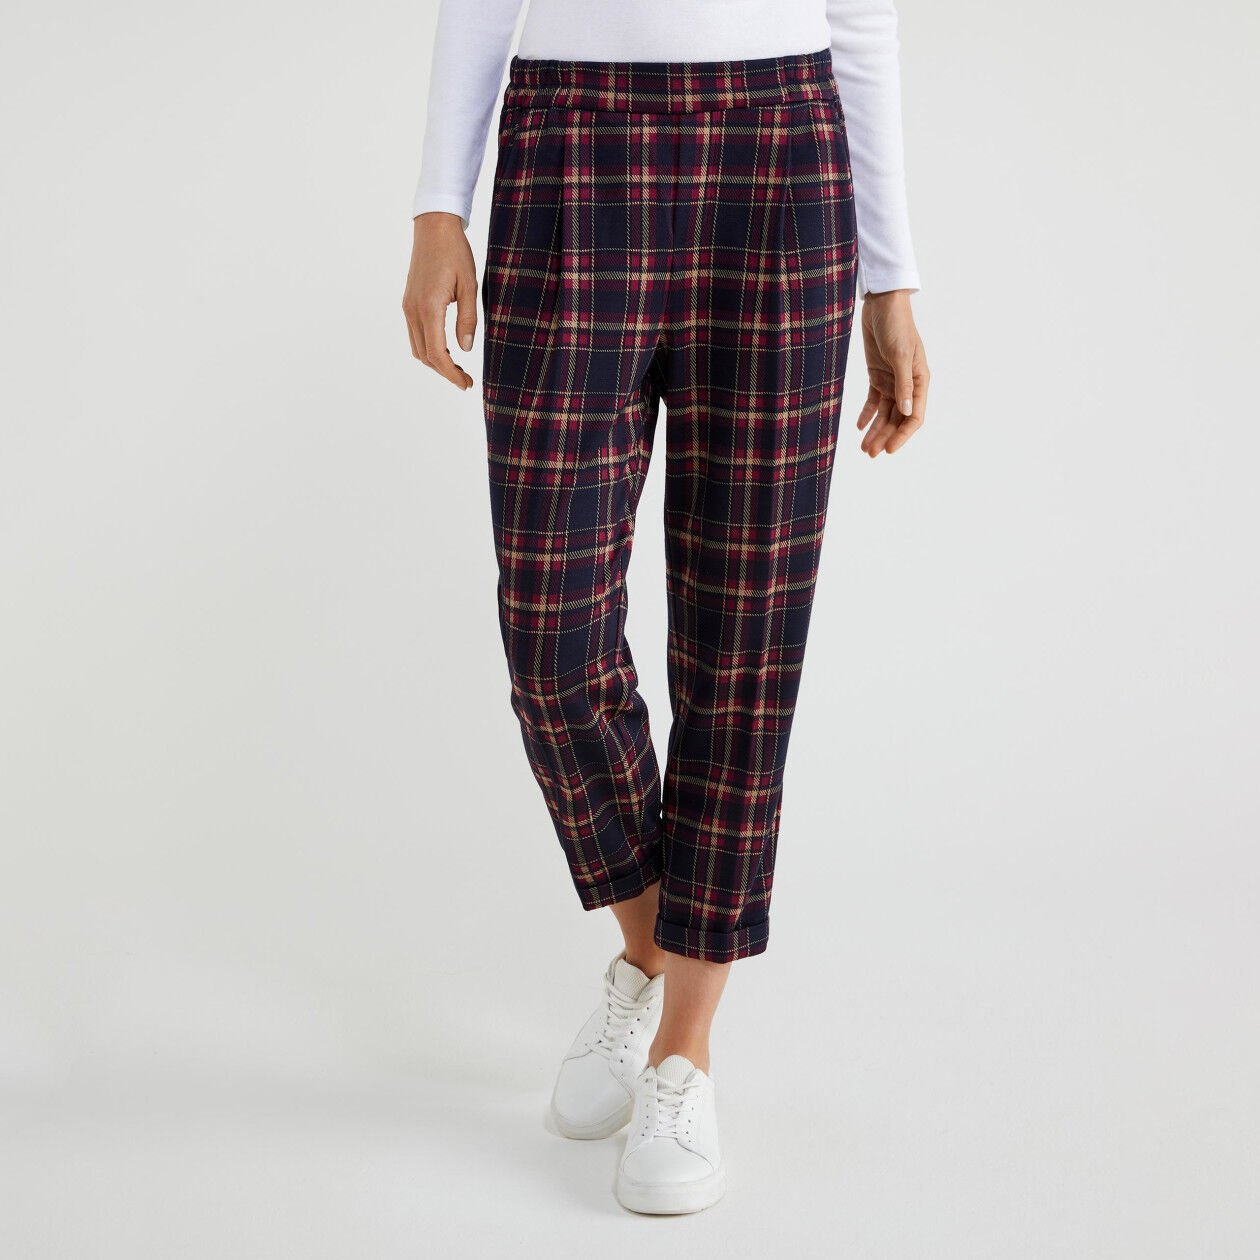 Stretch trousers with cuffs